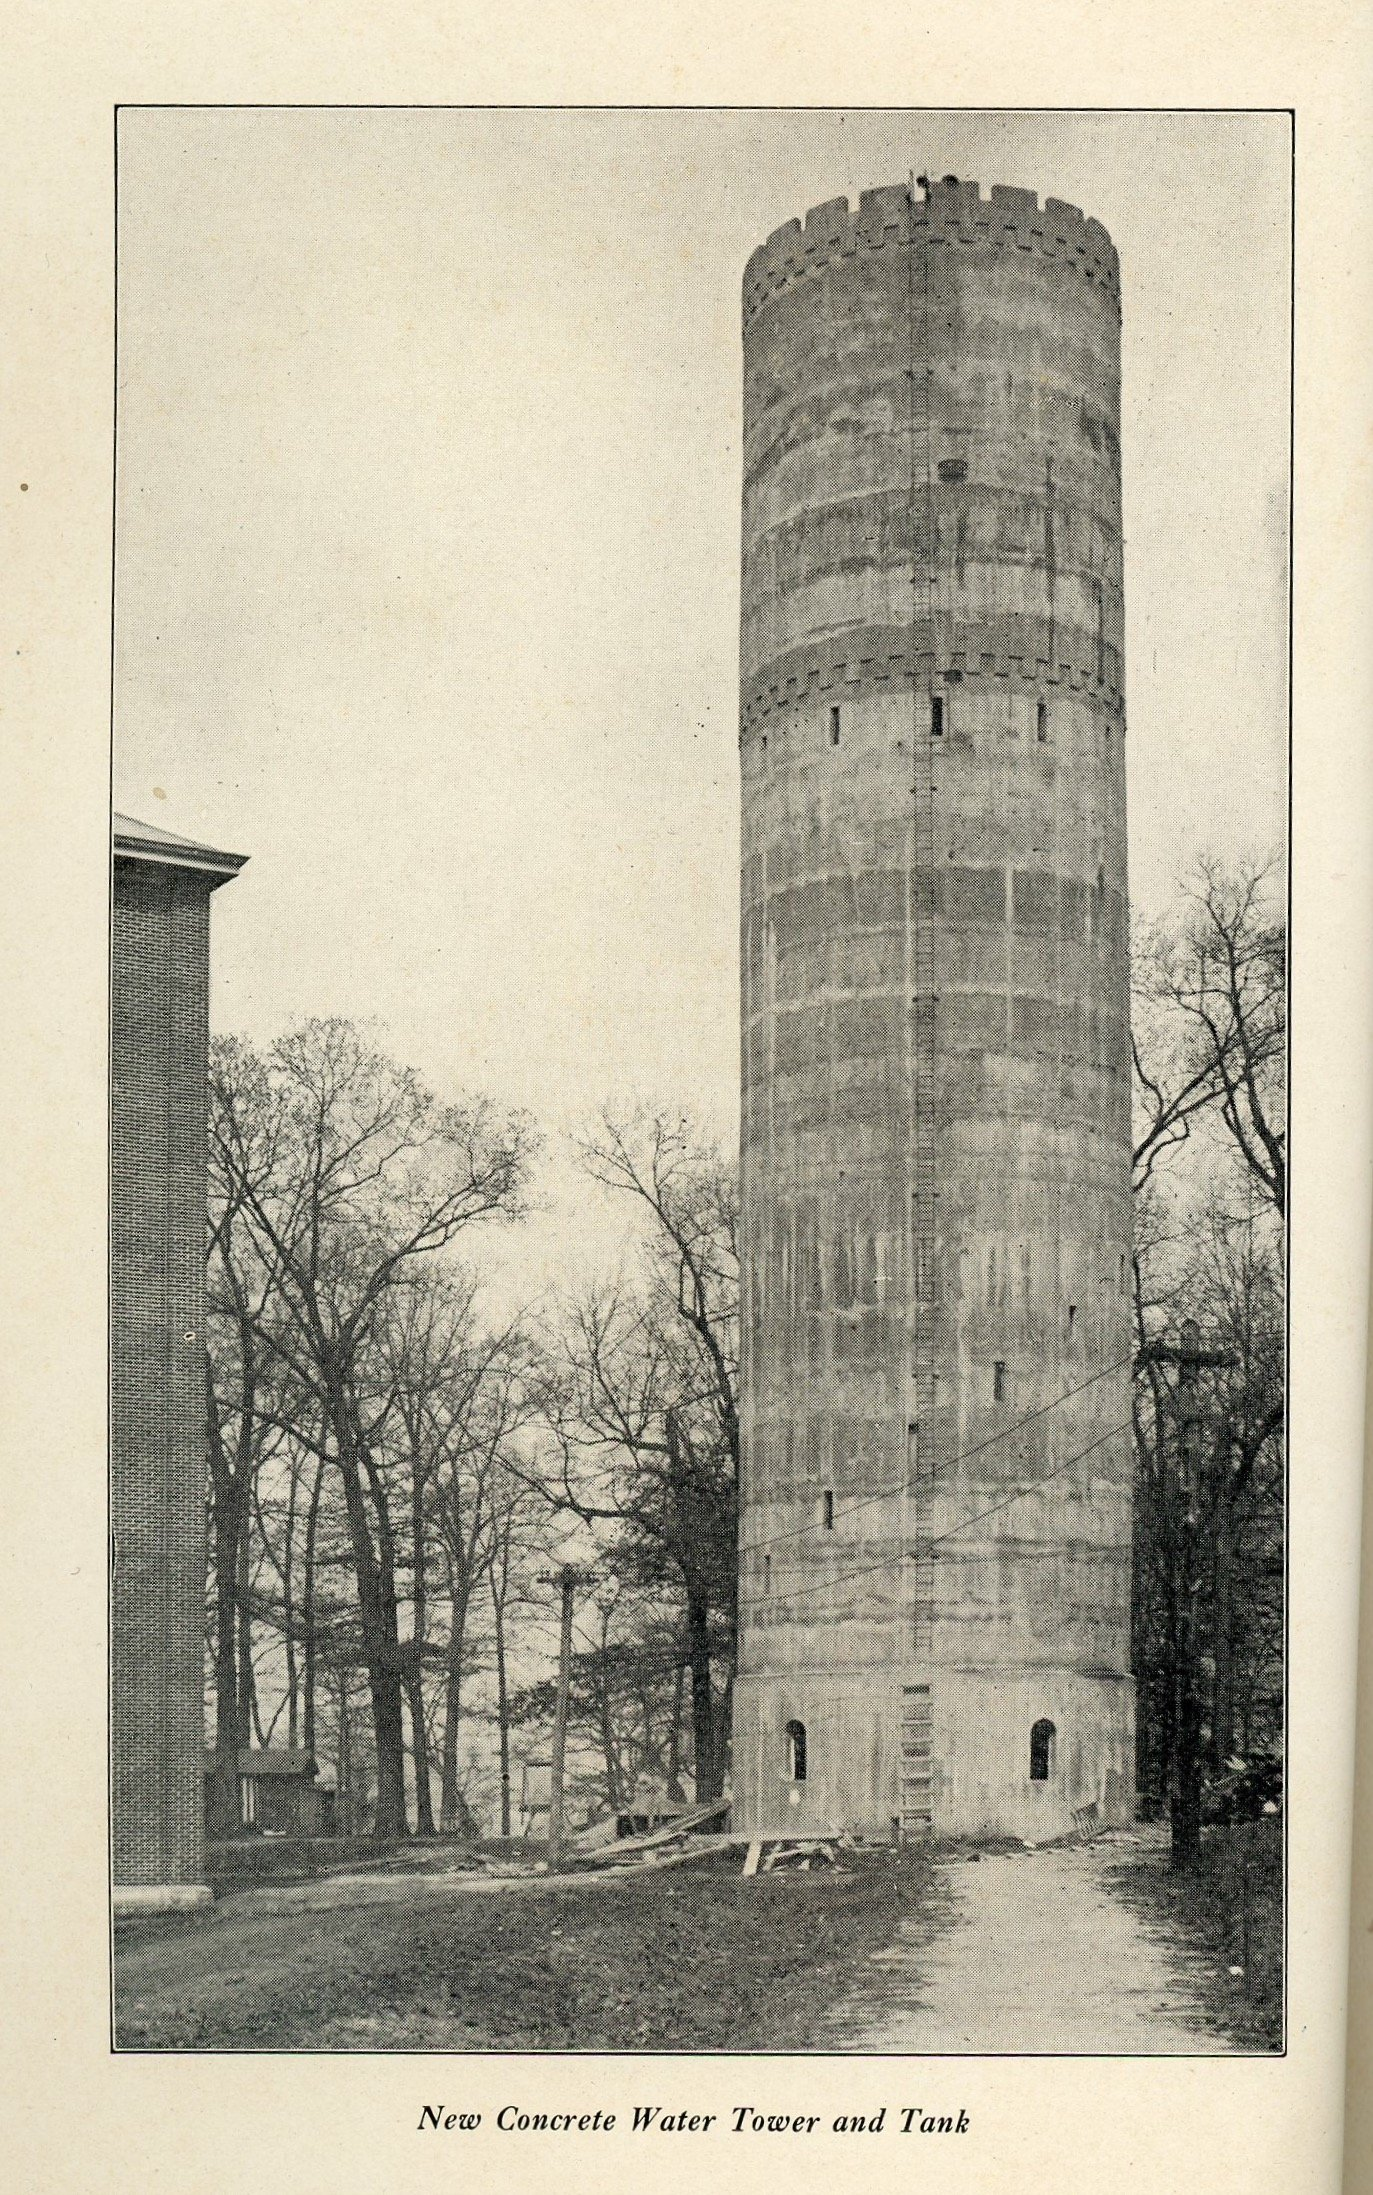 Here is an image from after construction was completed in 1911.